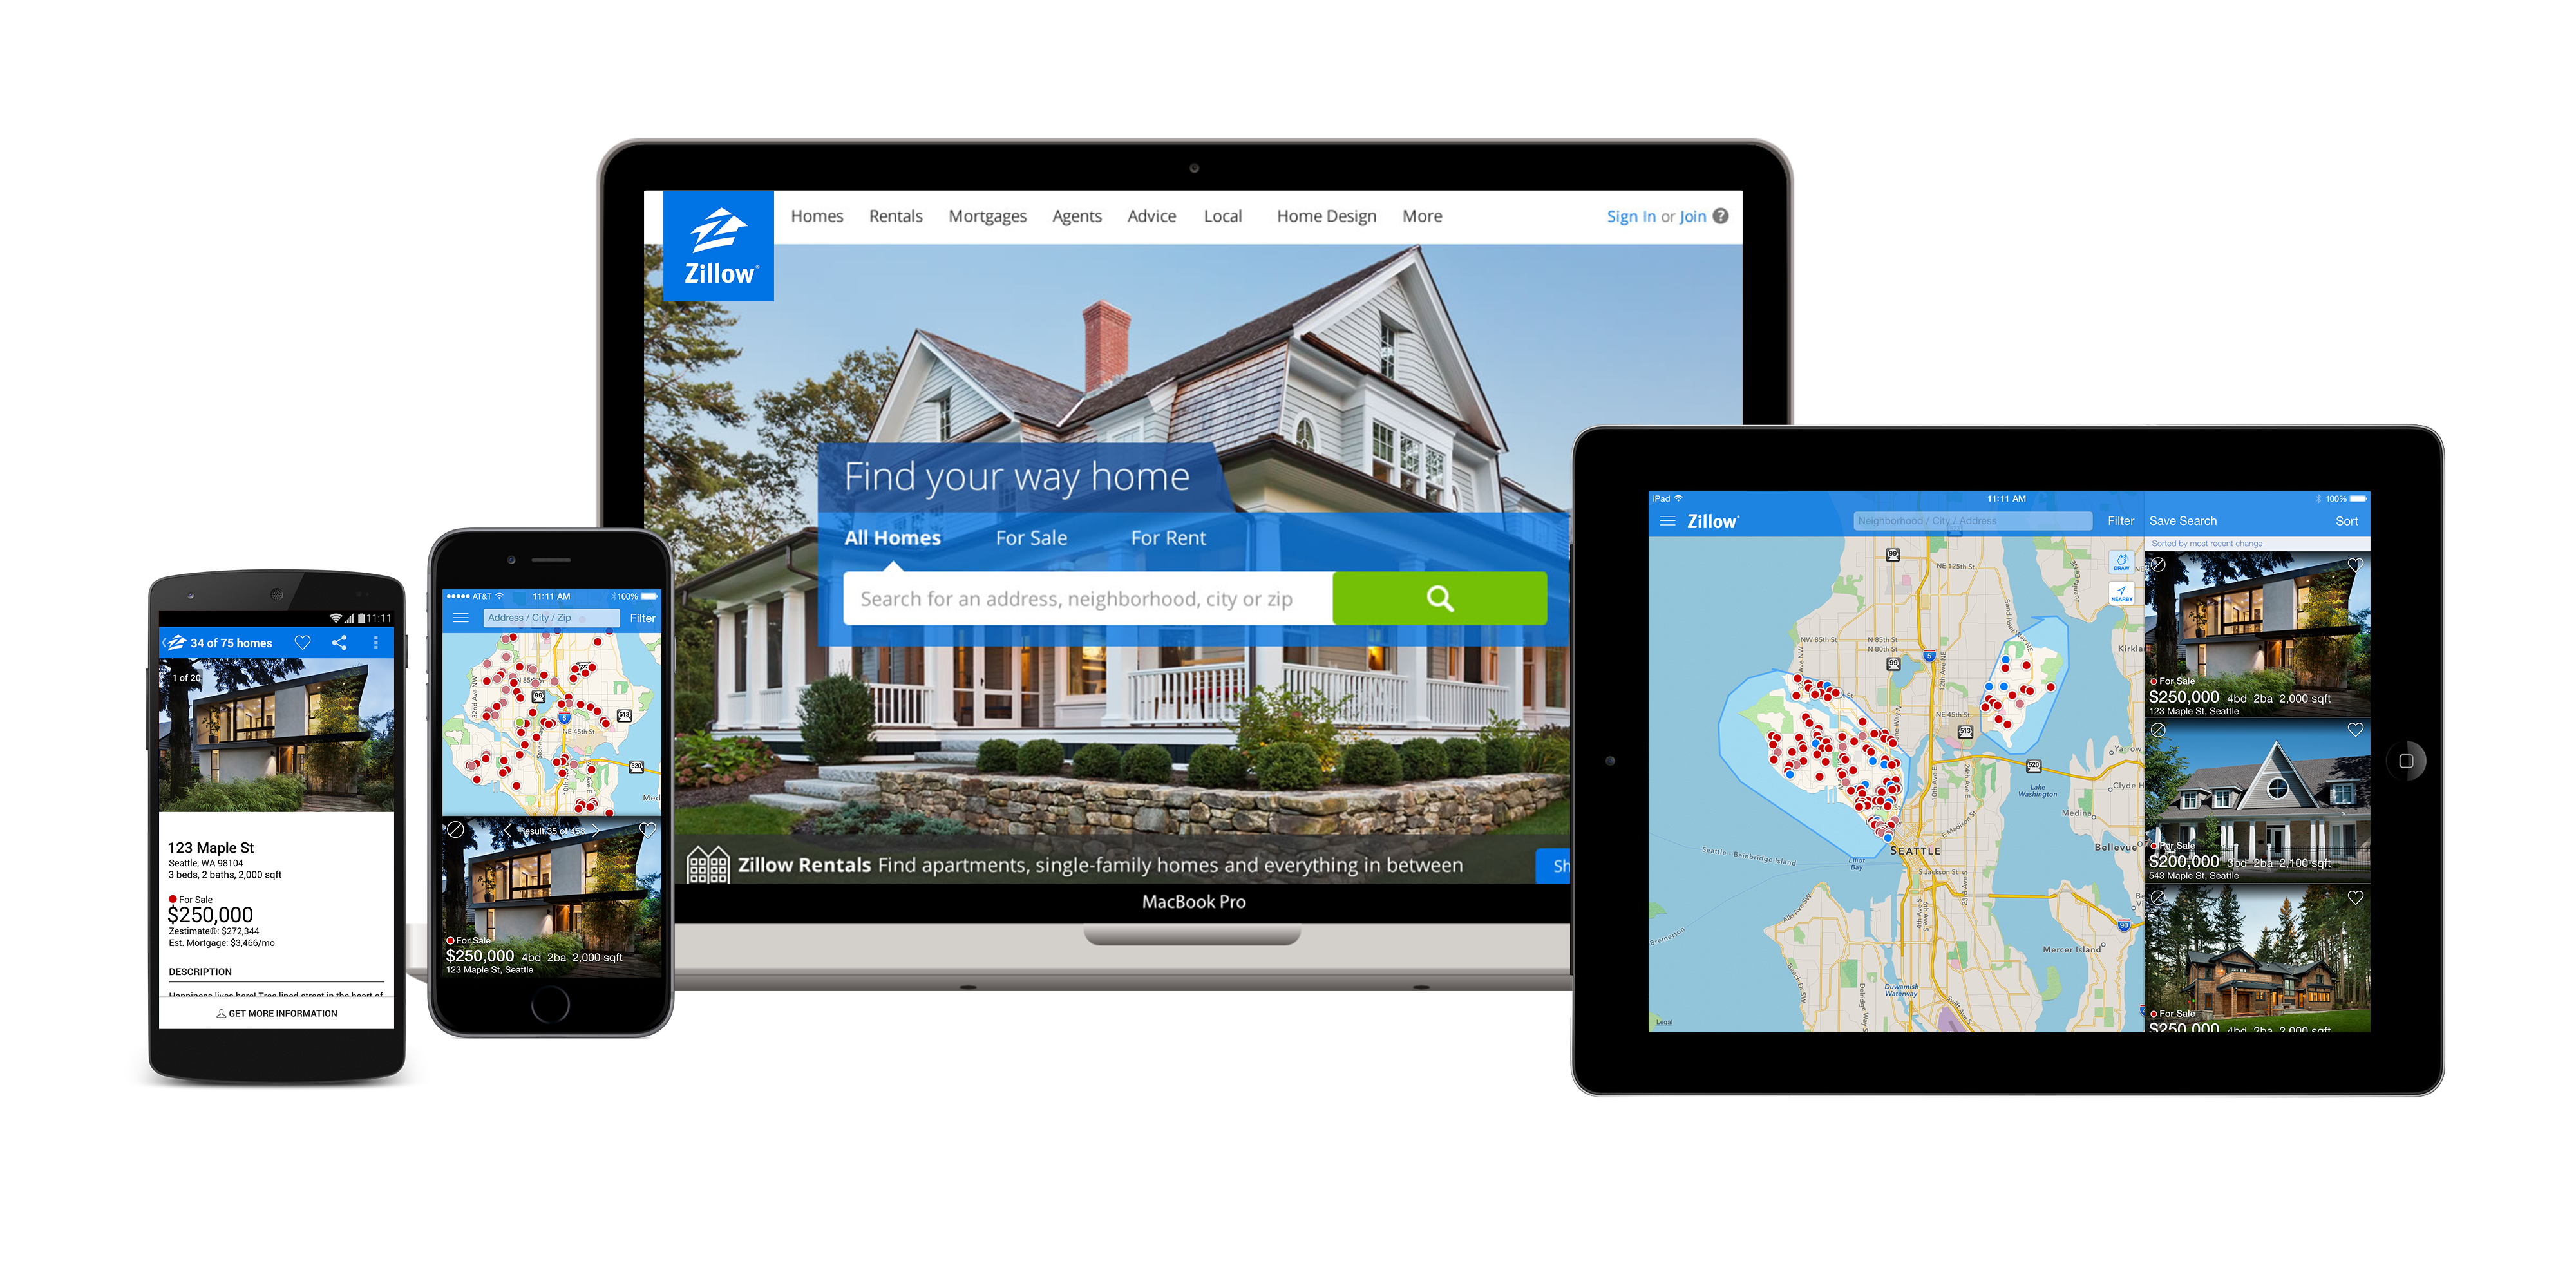 Zillow app (With images) Zillow, Apartment rental